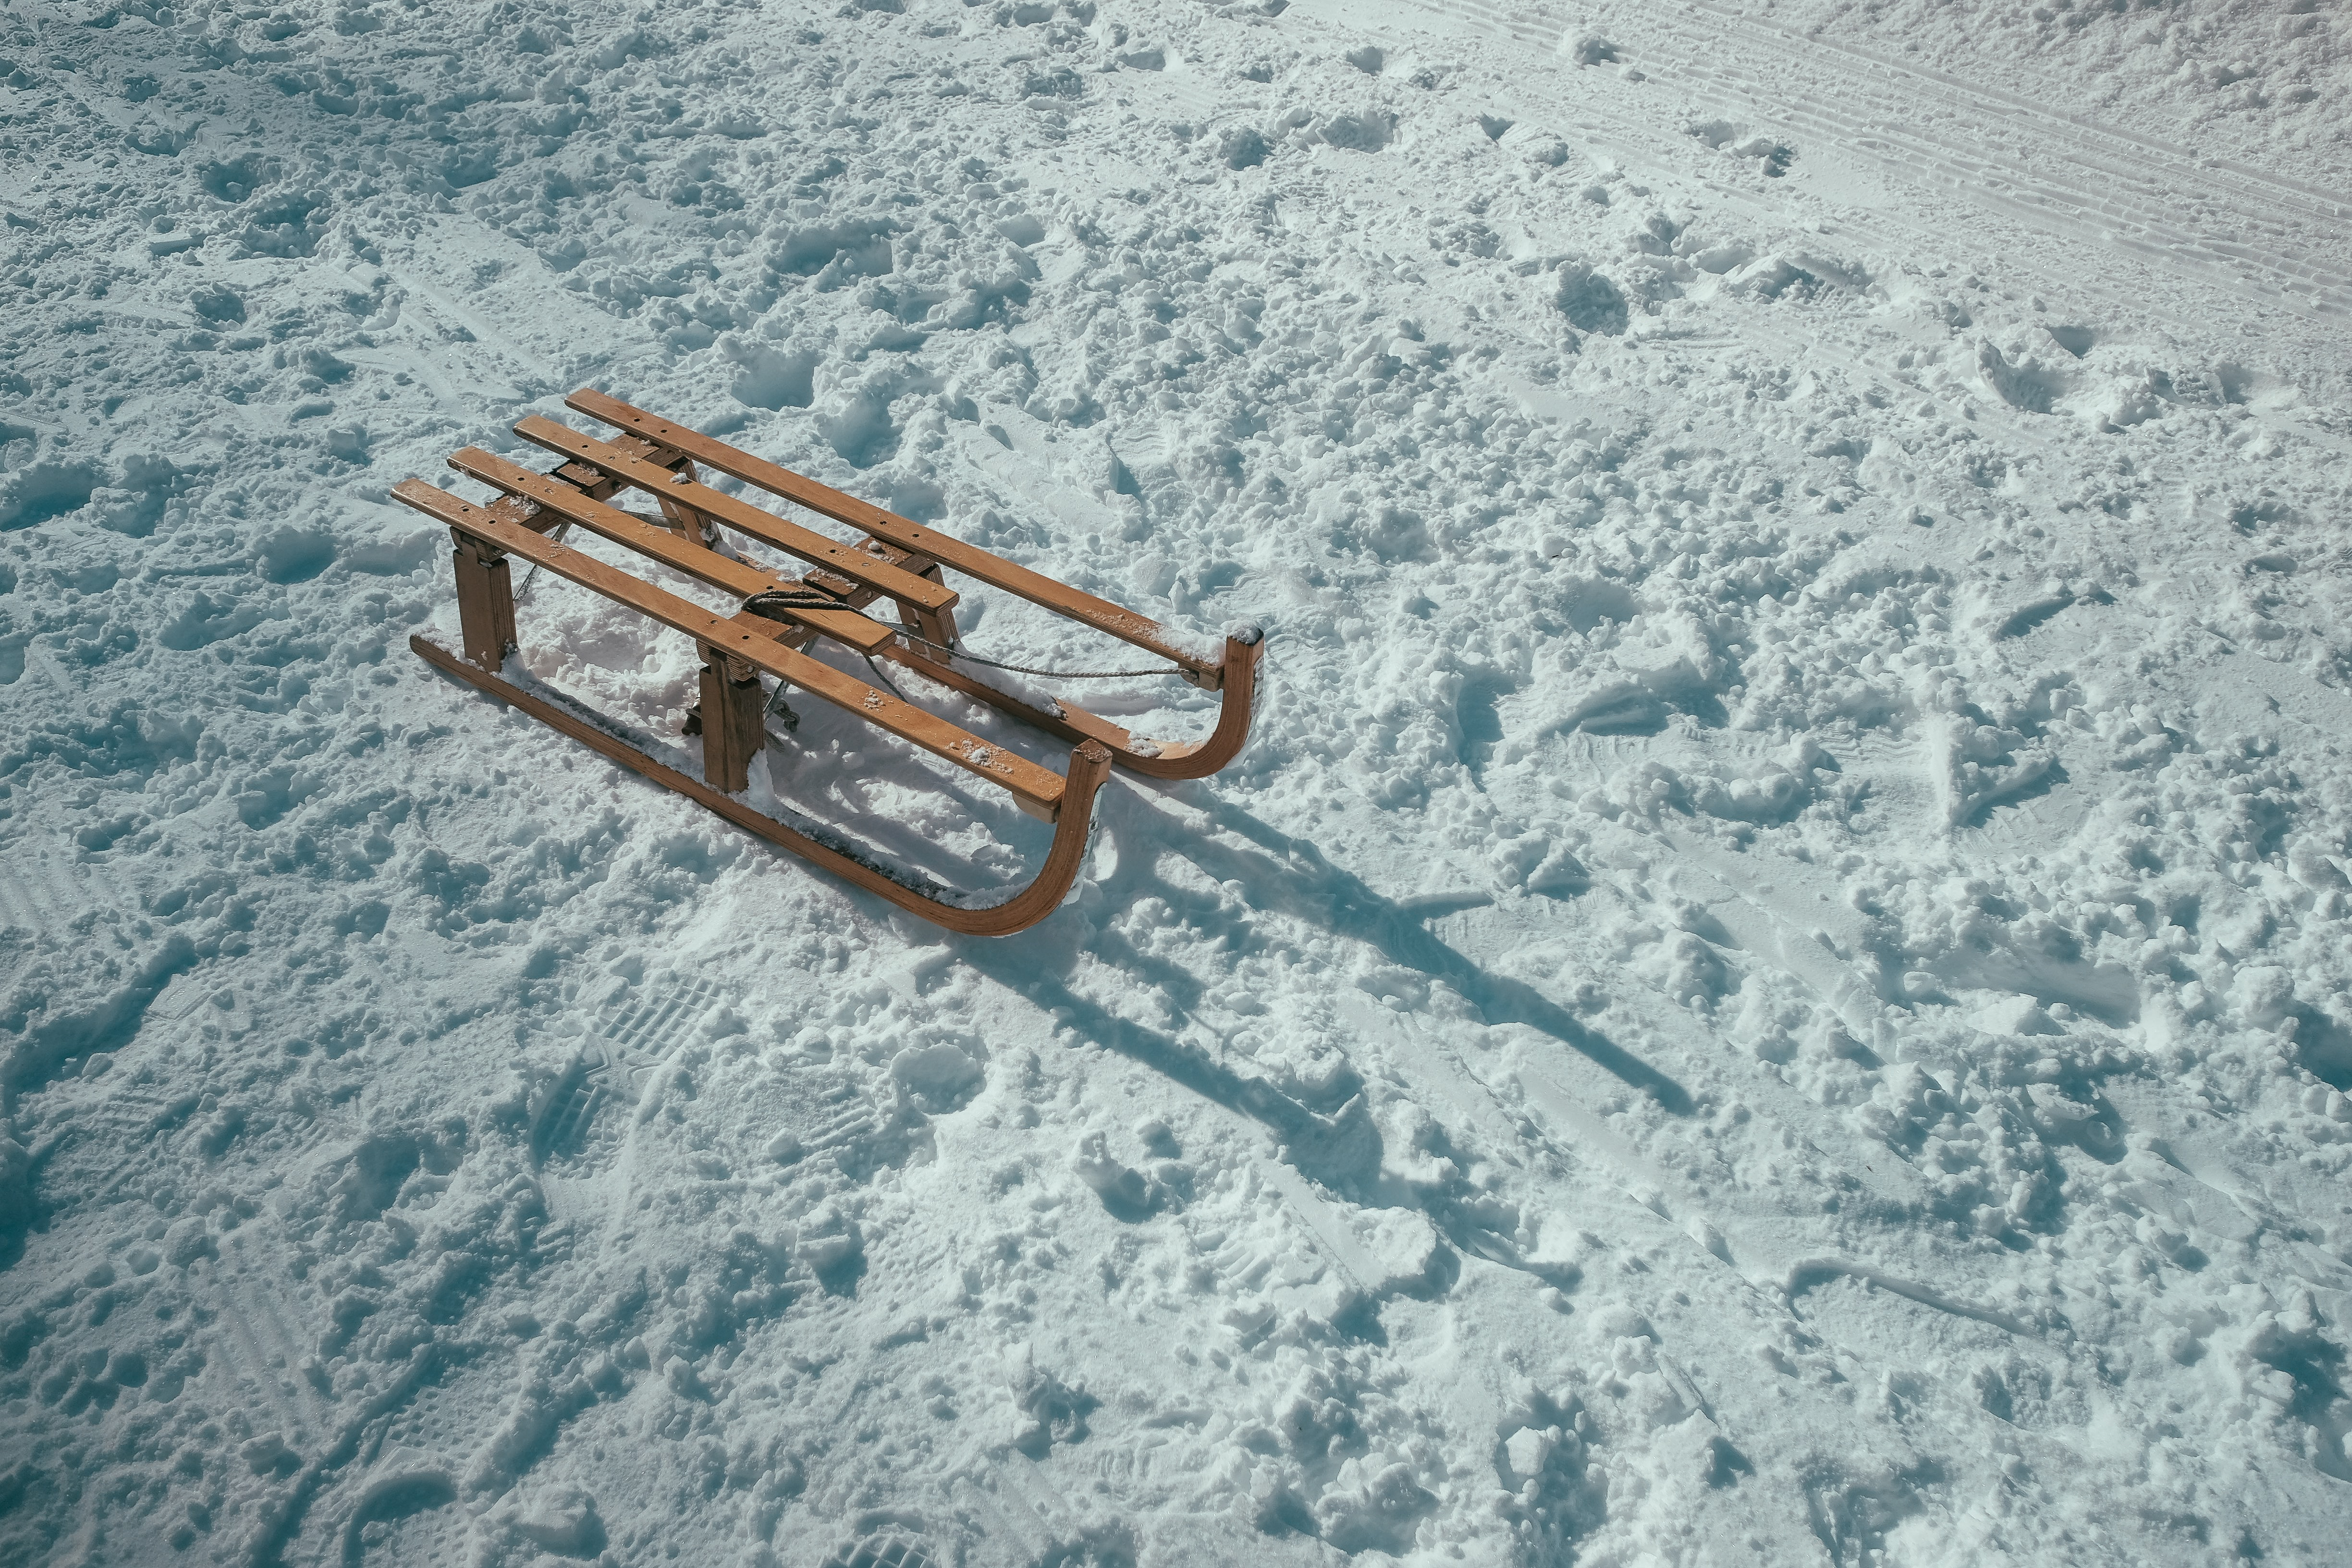 A wooden sled on a snowy hill